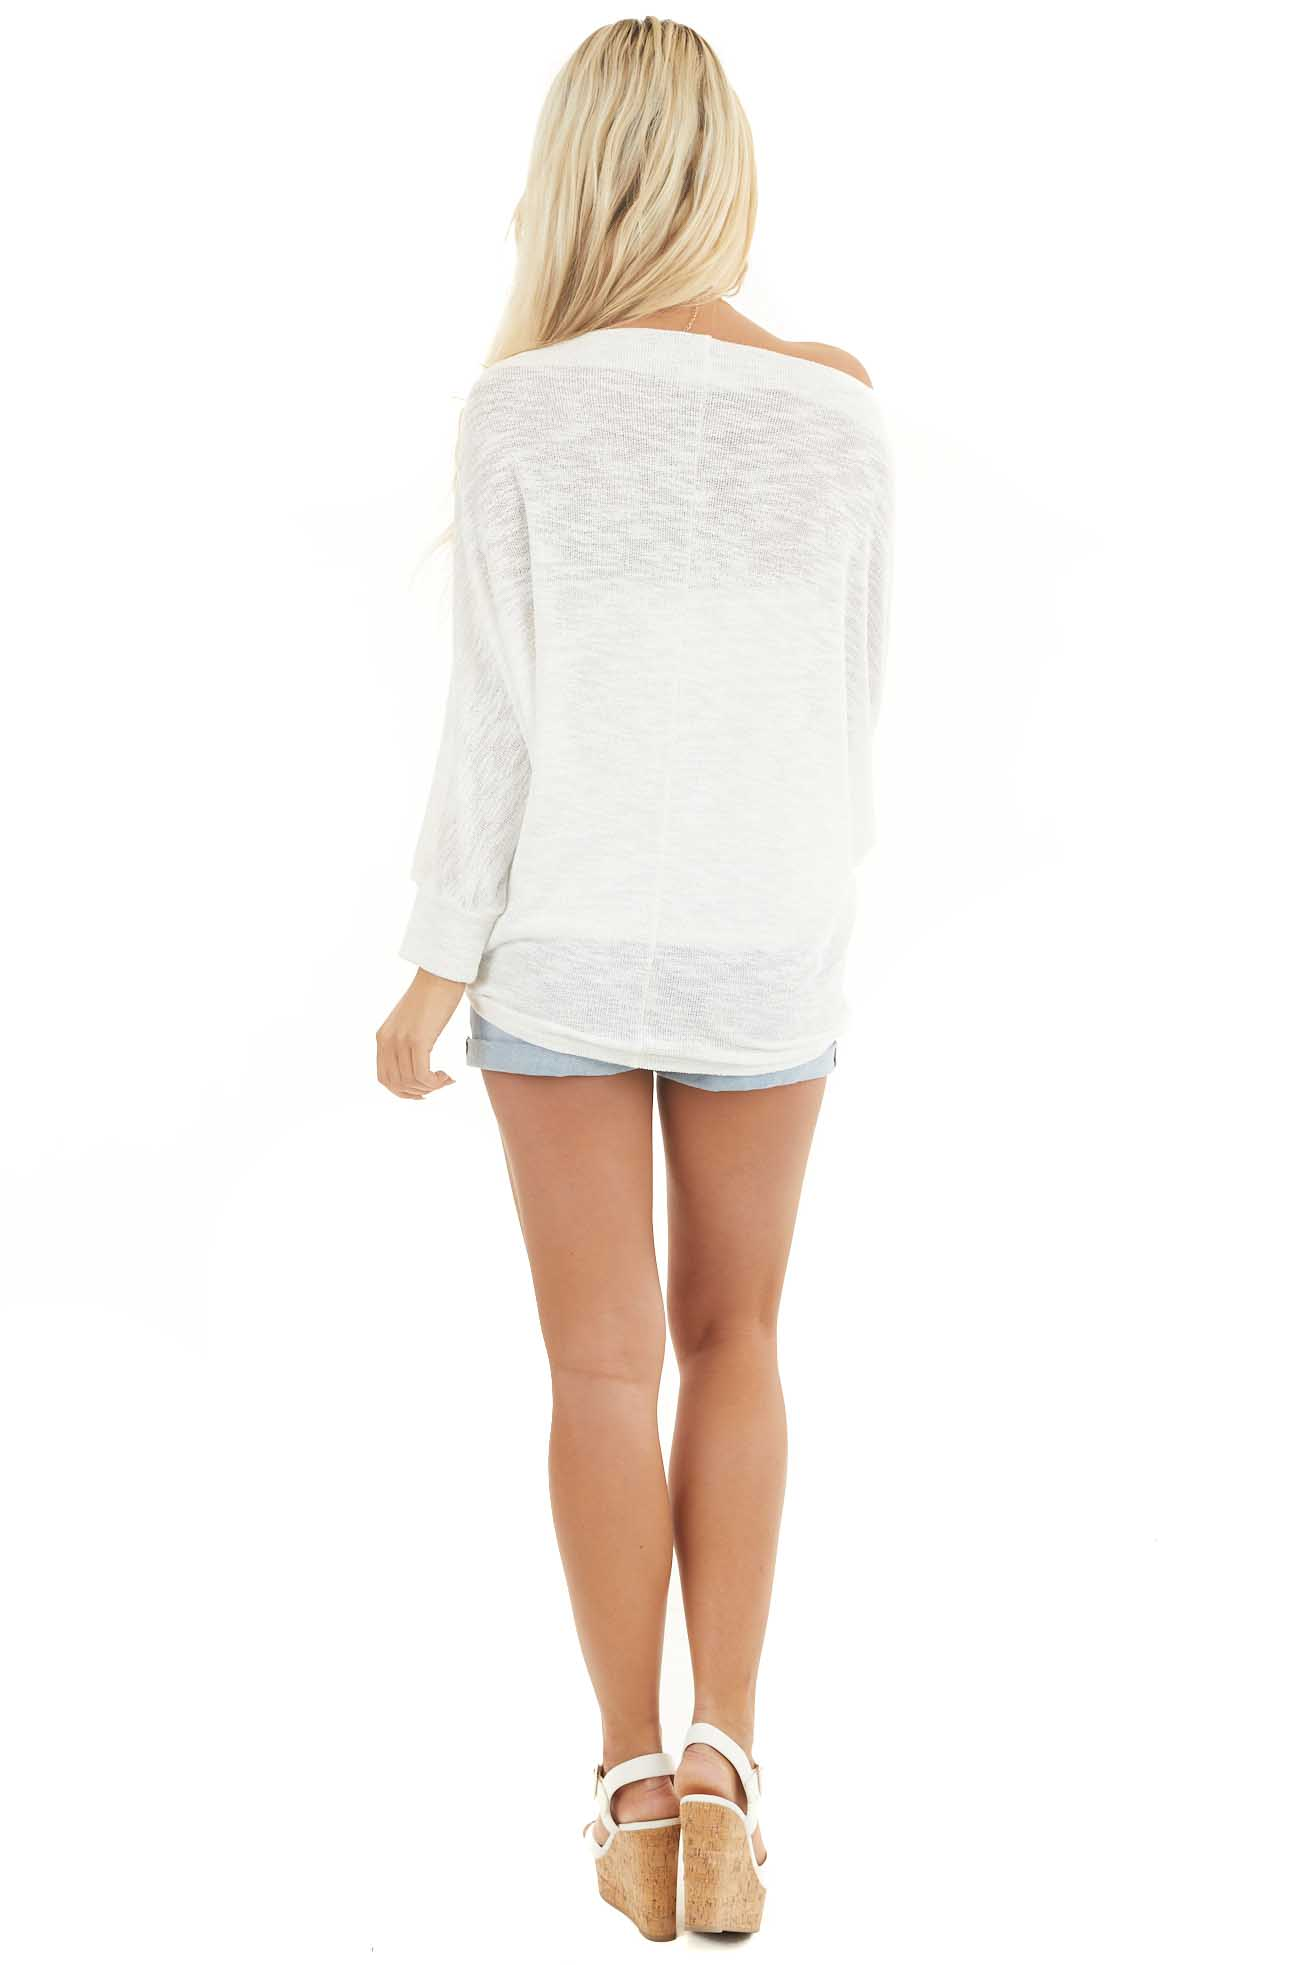 Off White Off the Shoulder Top with Long Dolman Sleeves back full body